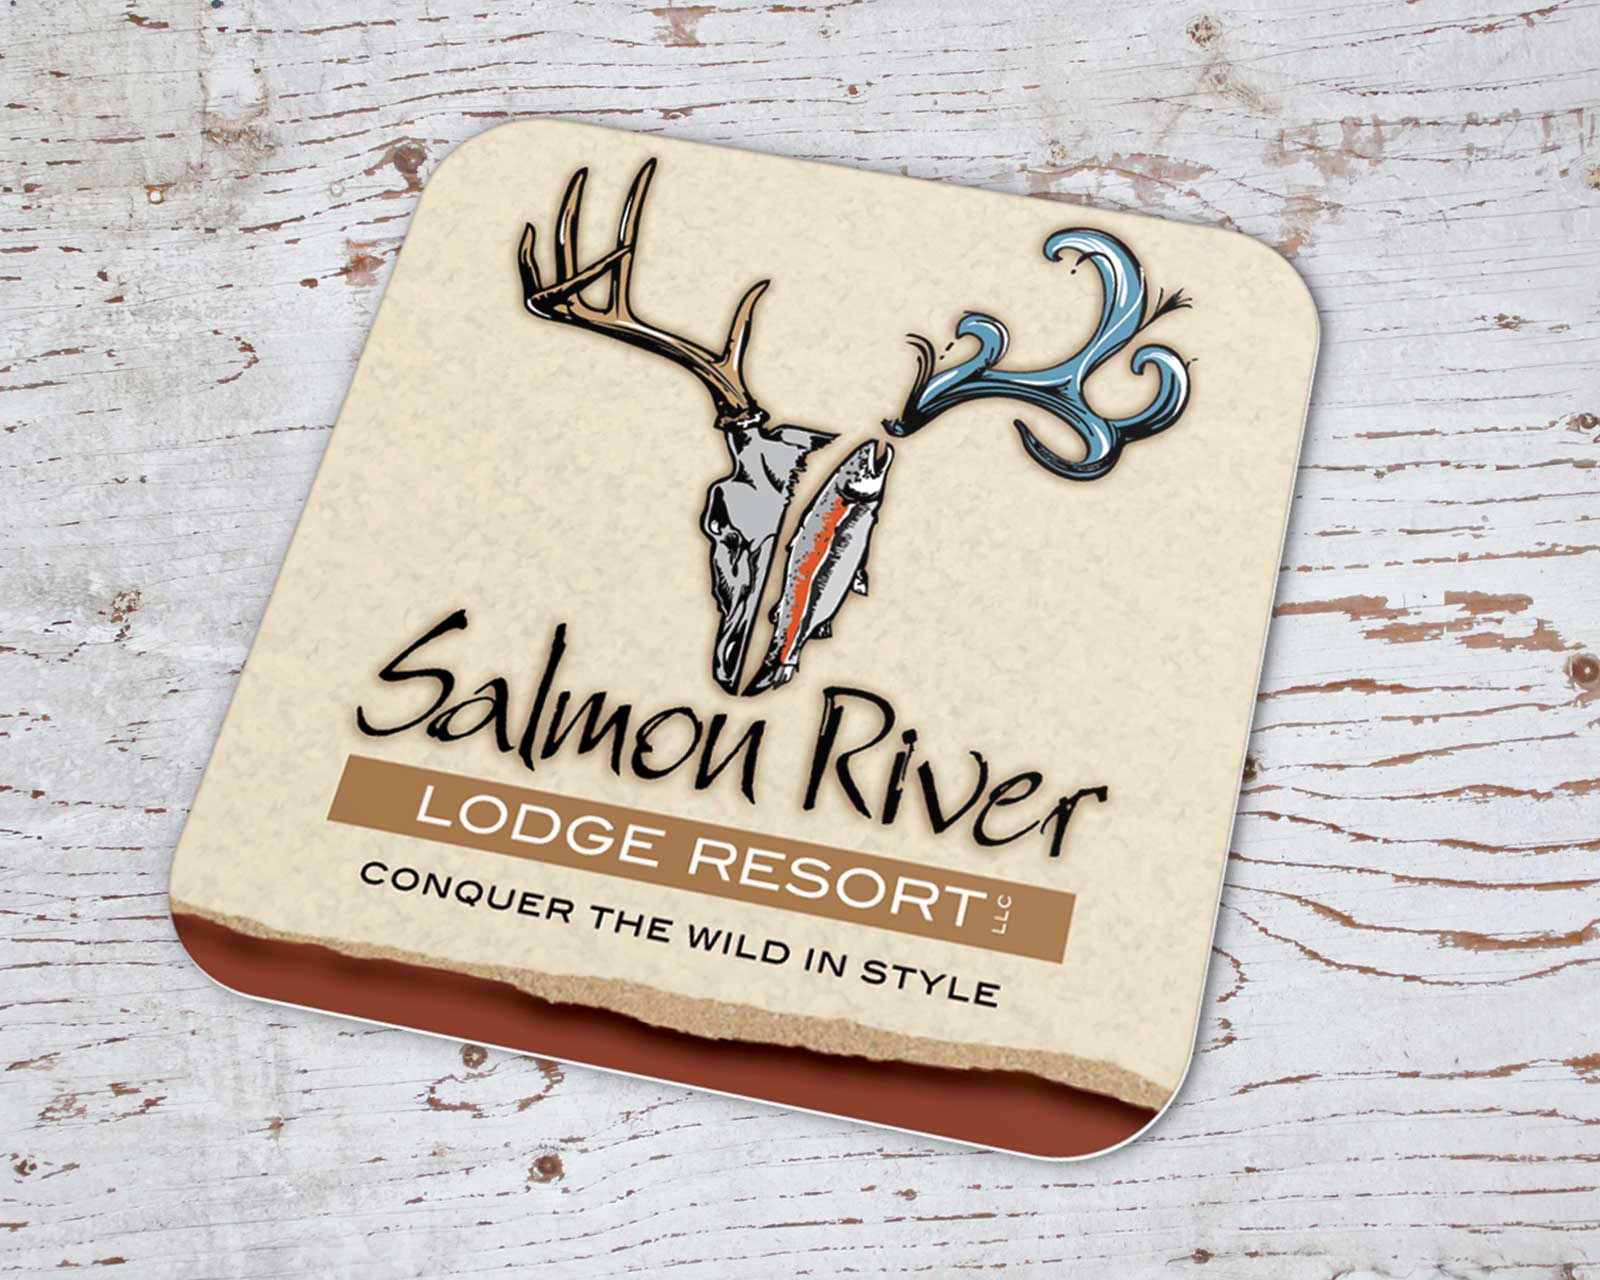 Logo design for Idaho outfitter and resort